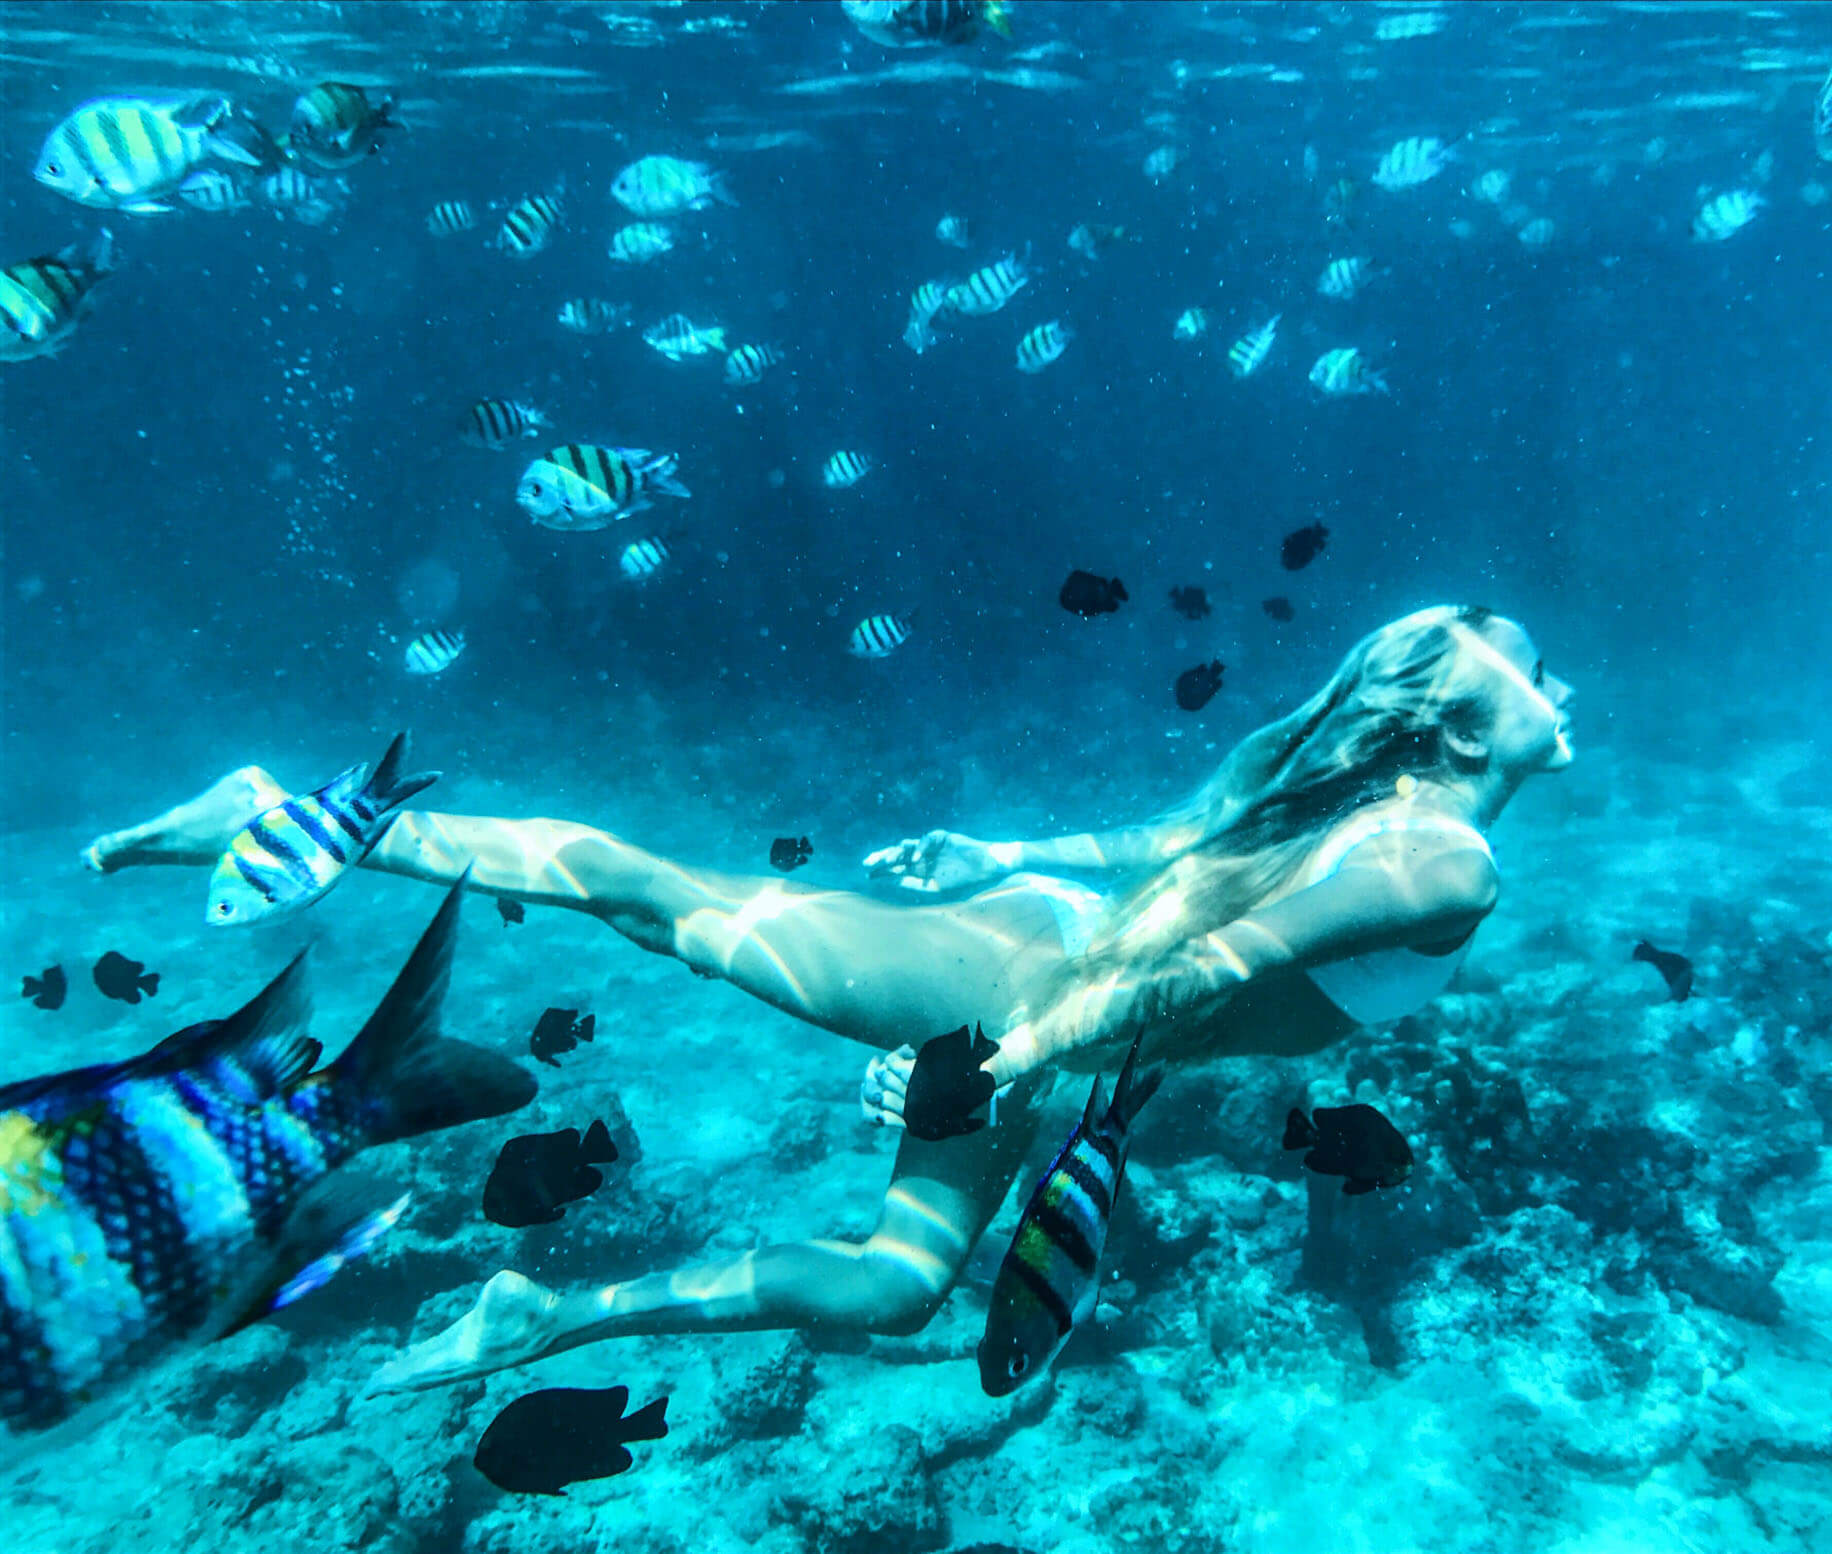 alex couples coordinates swimming underwater with fish koh phi phi thailand